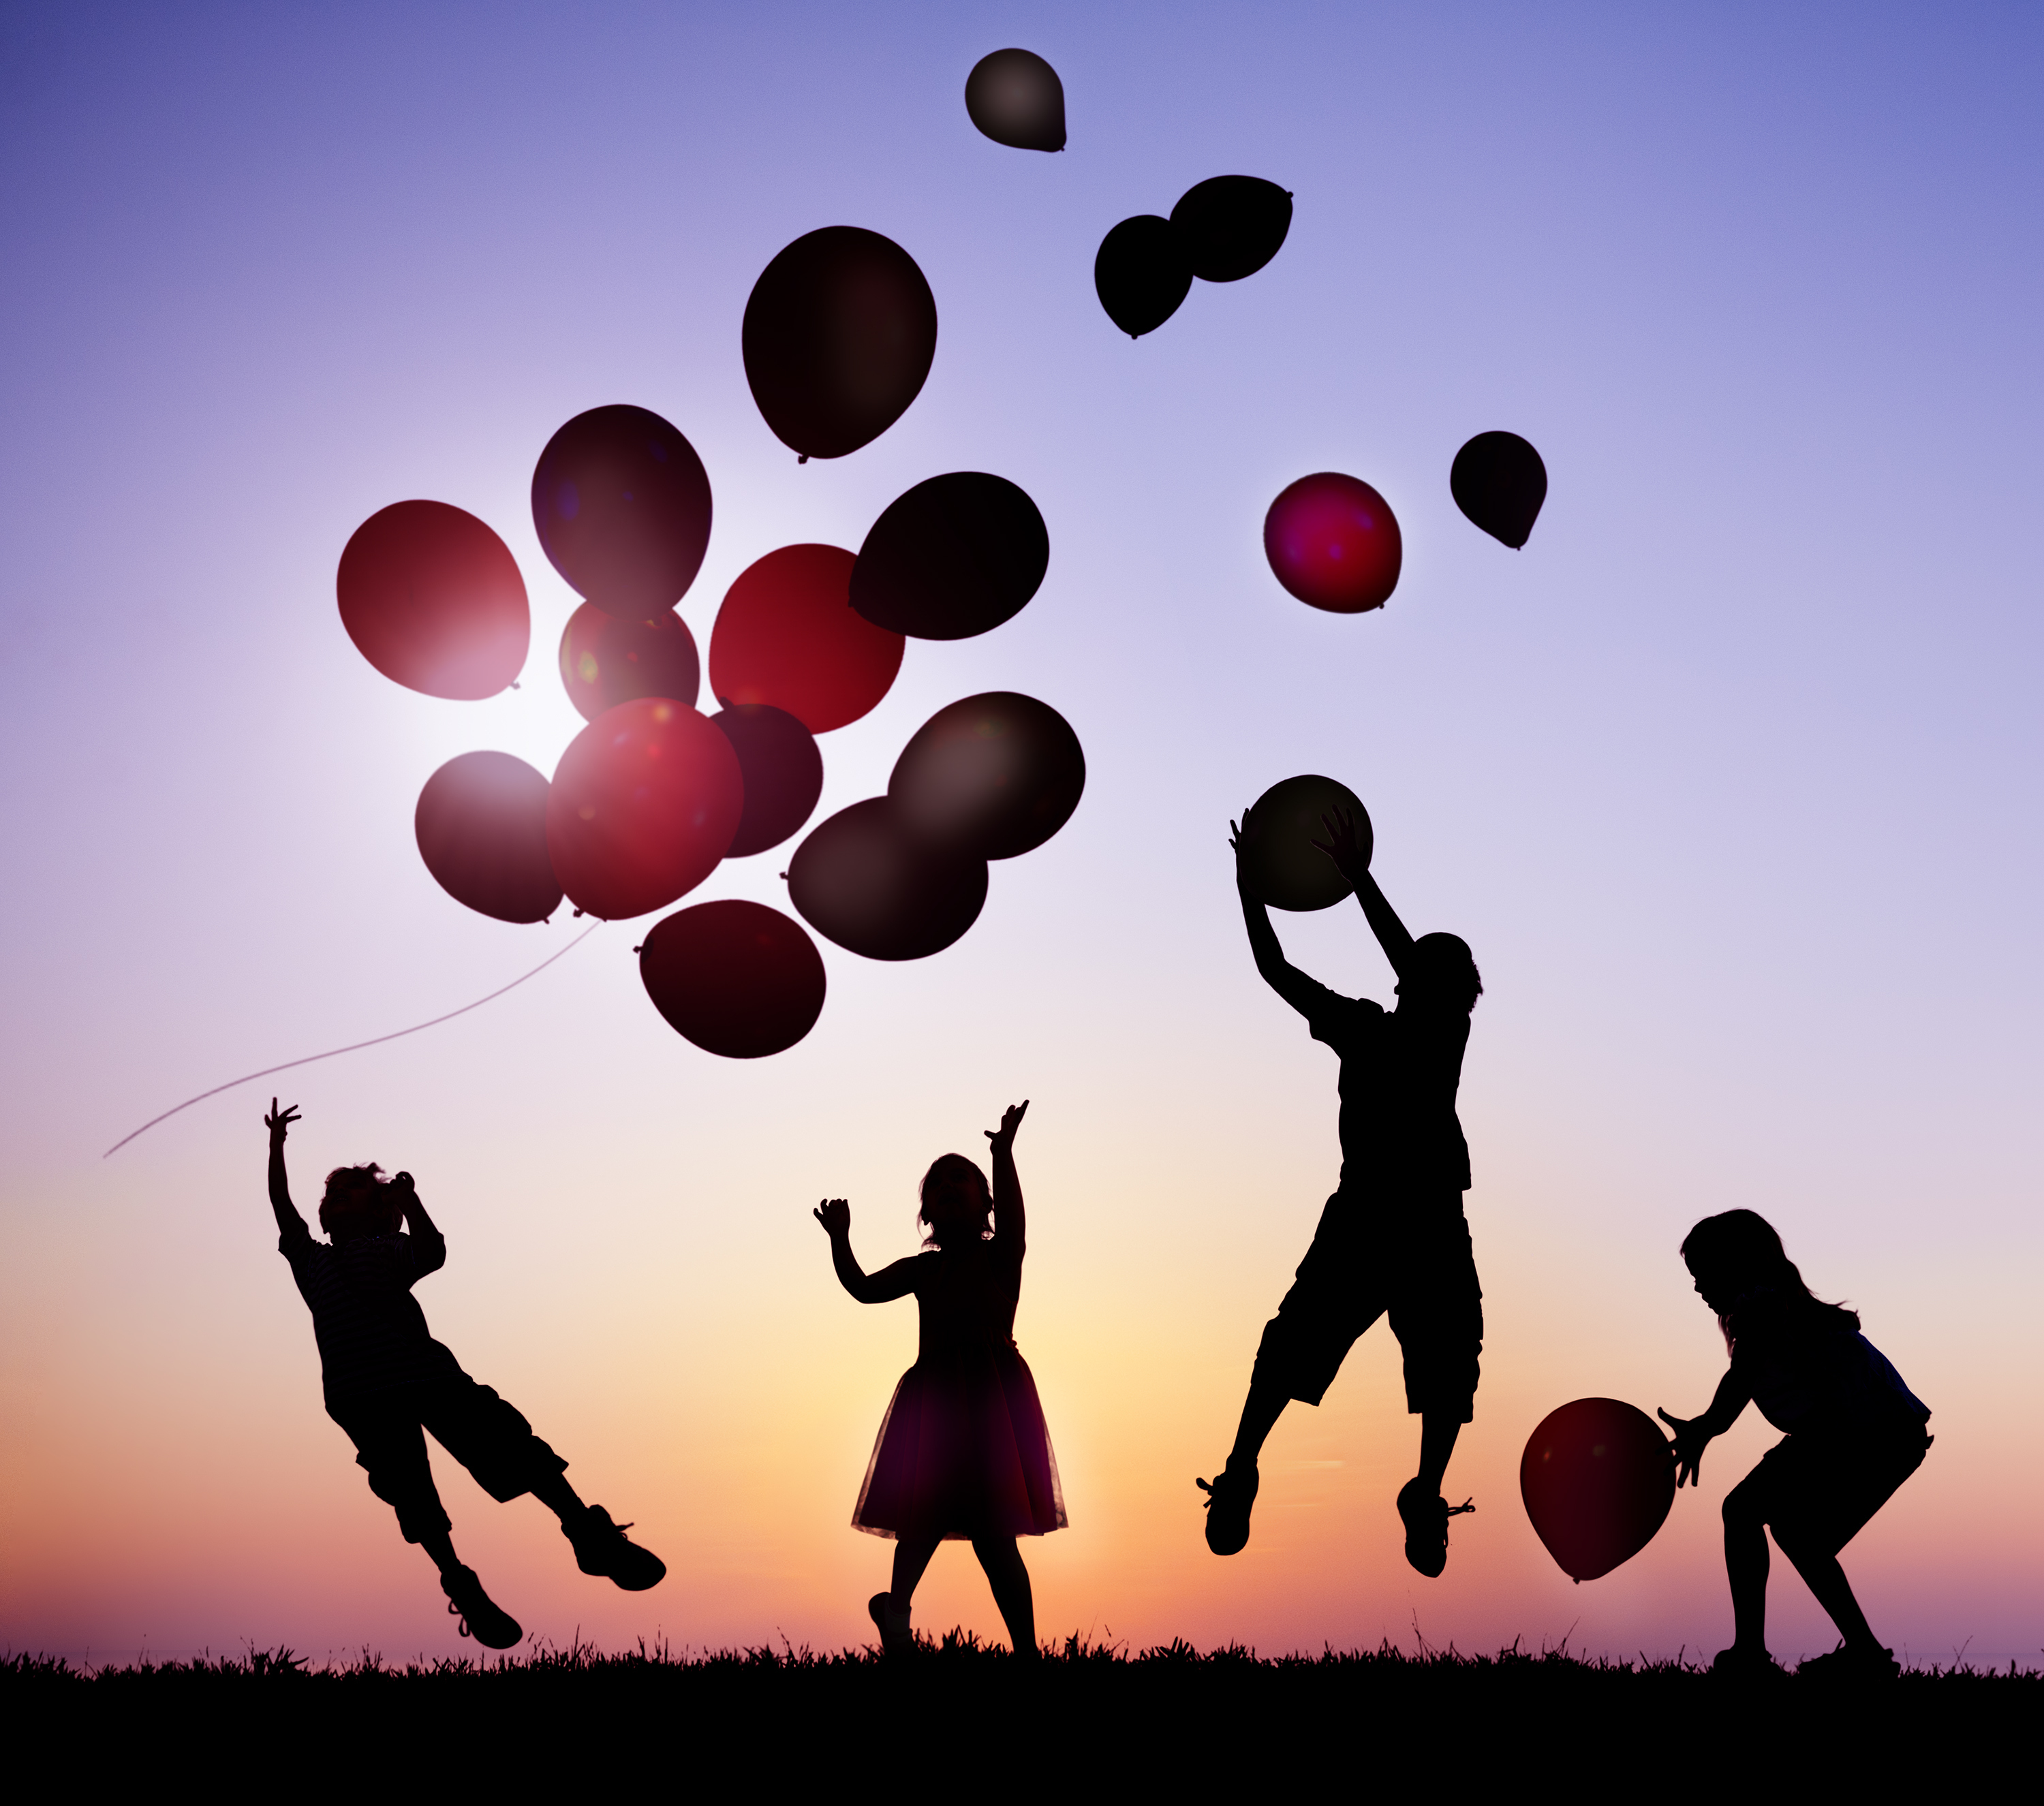 Children Outdoors Playing with Balloons